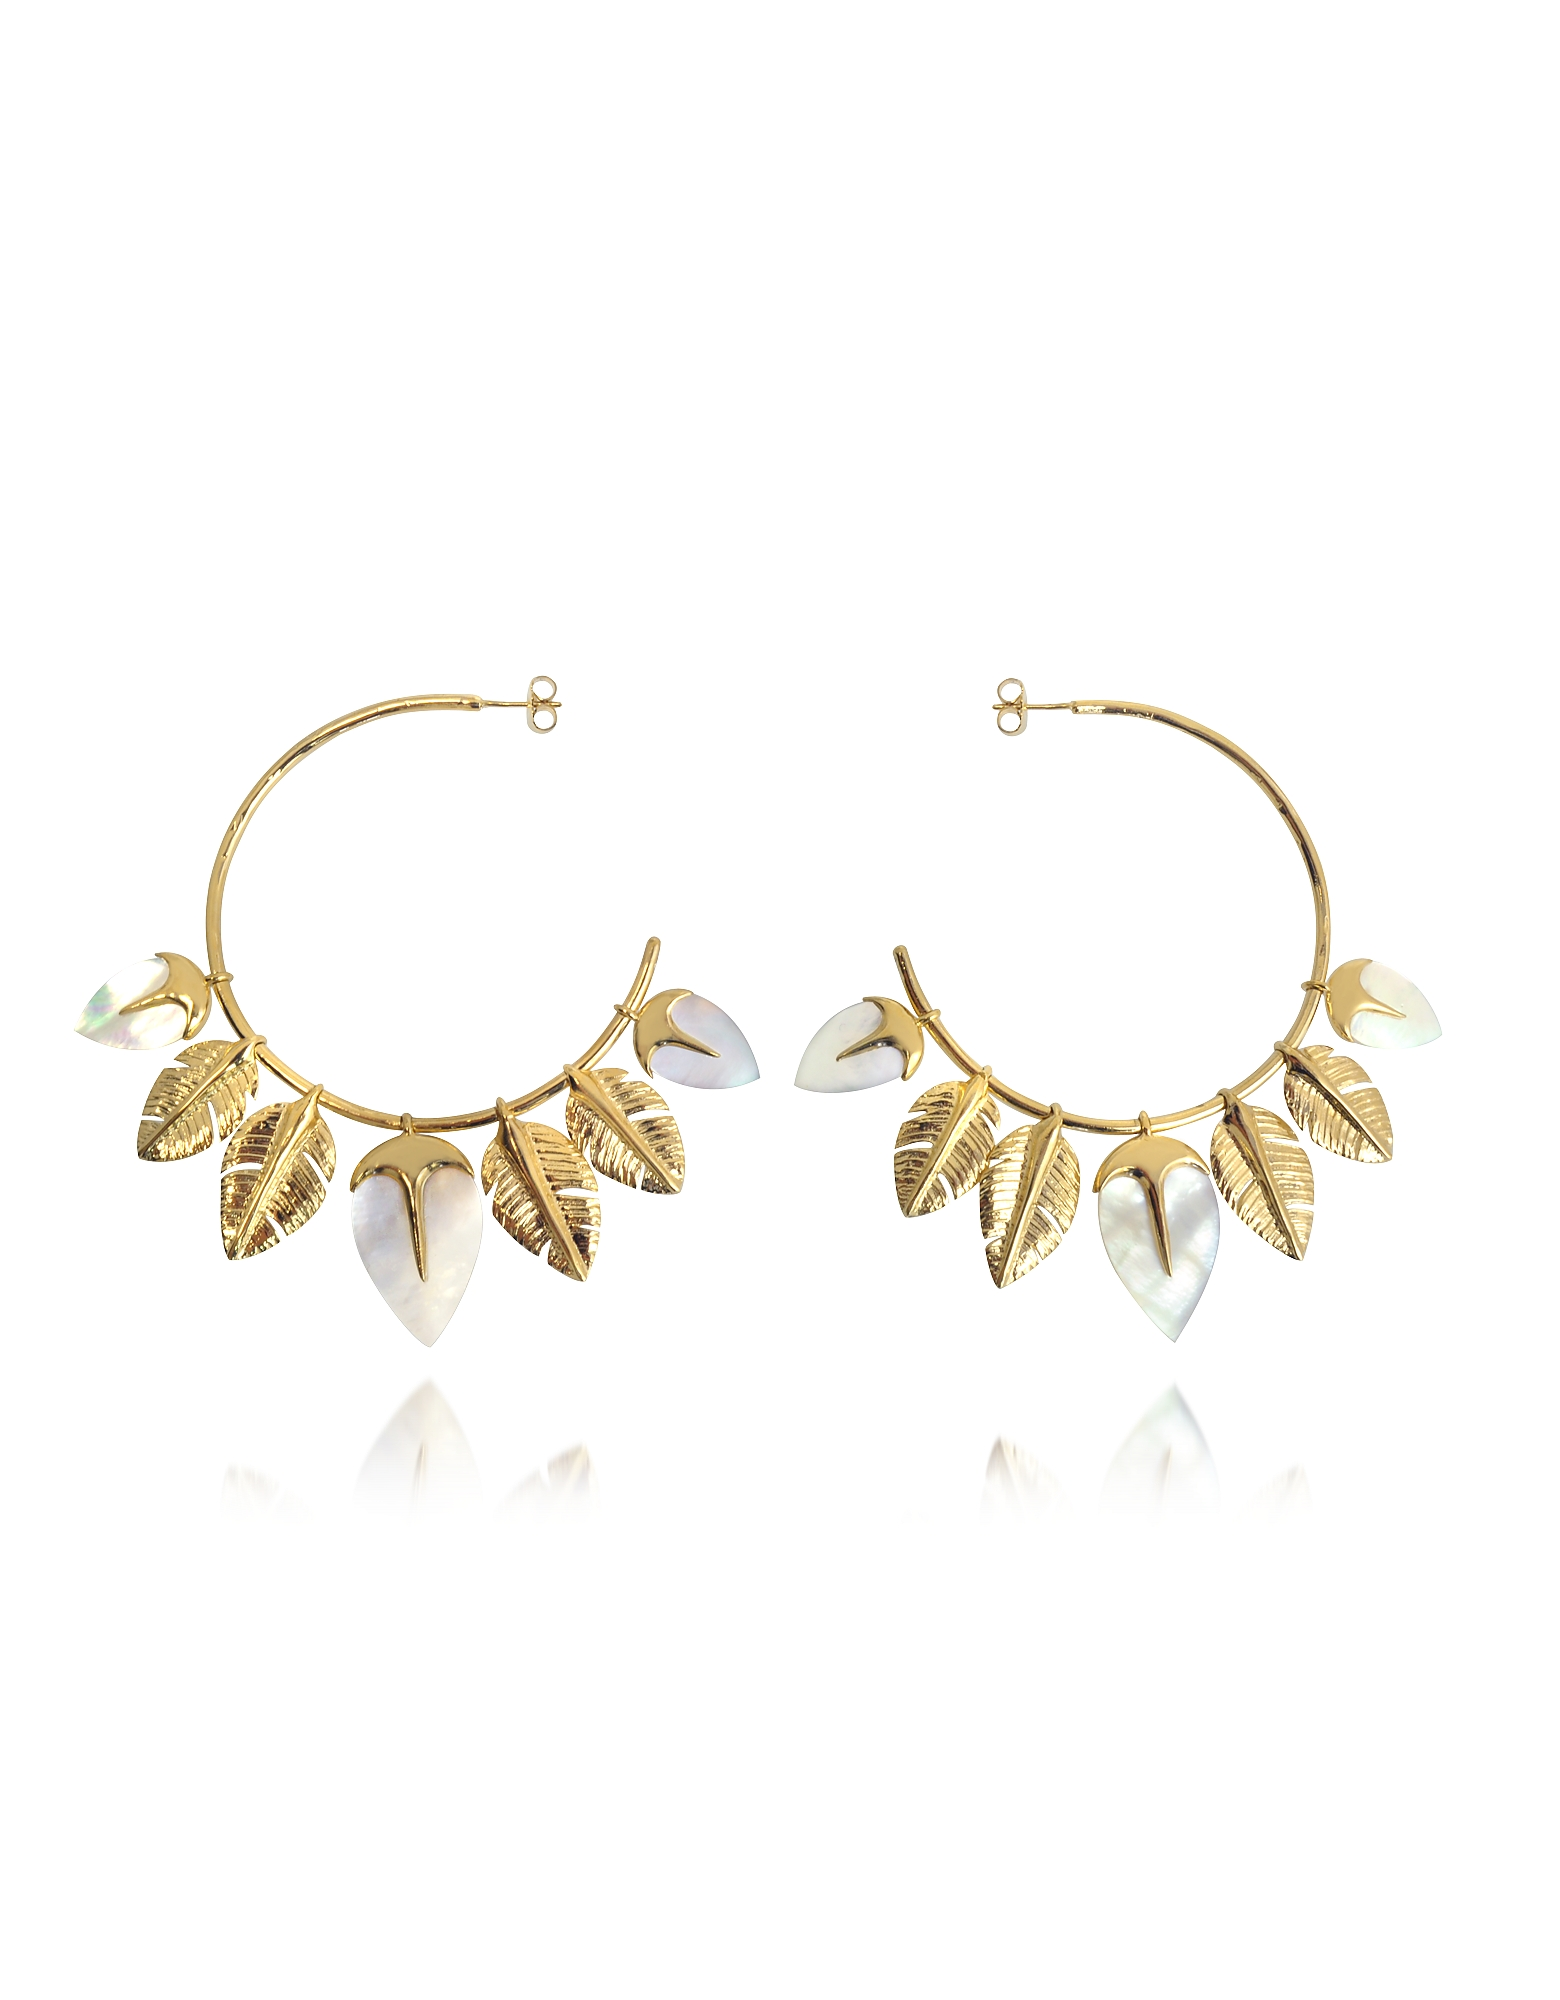 Aurelie Bidermann Earrings, Talitha Hoop Earrings